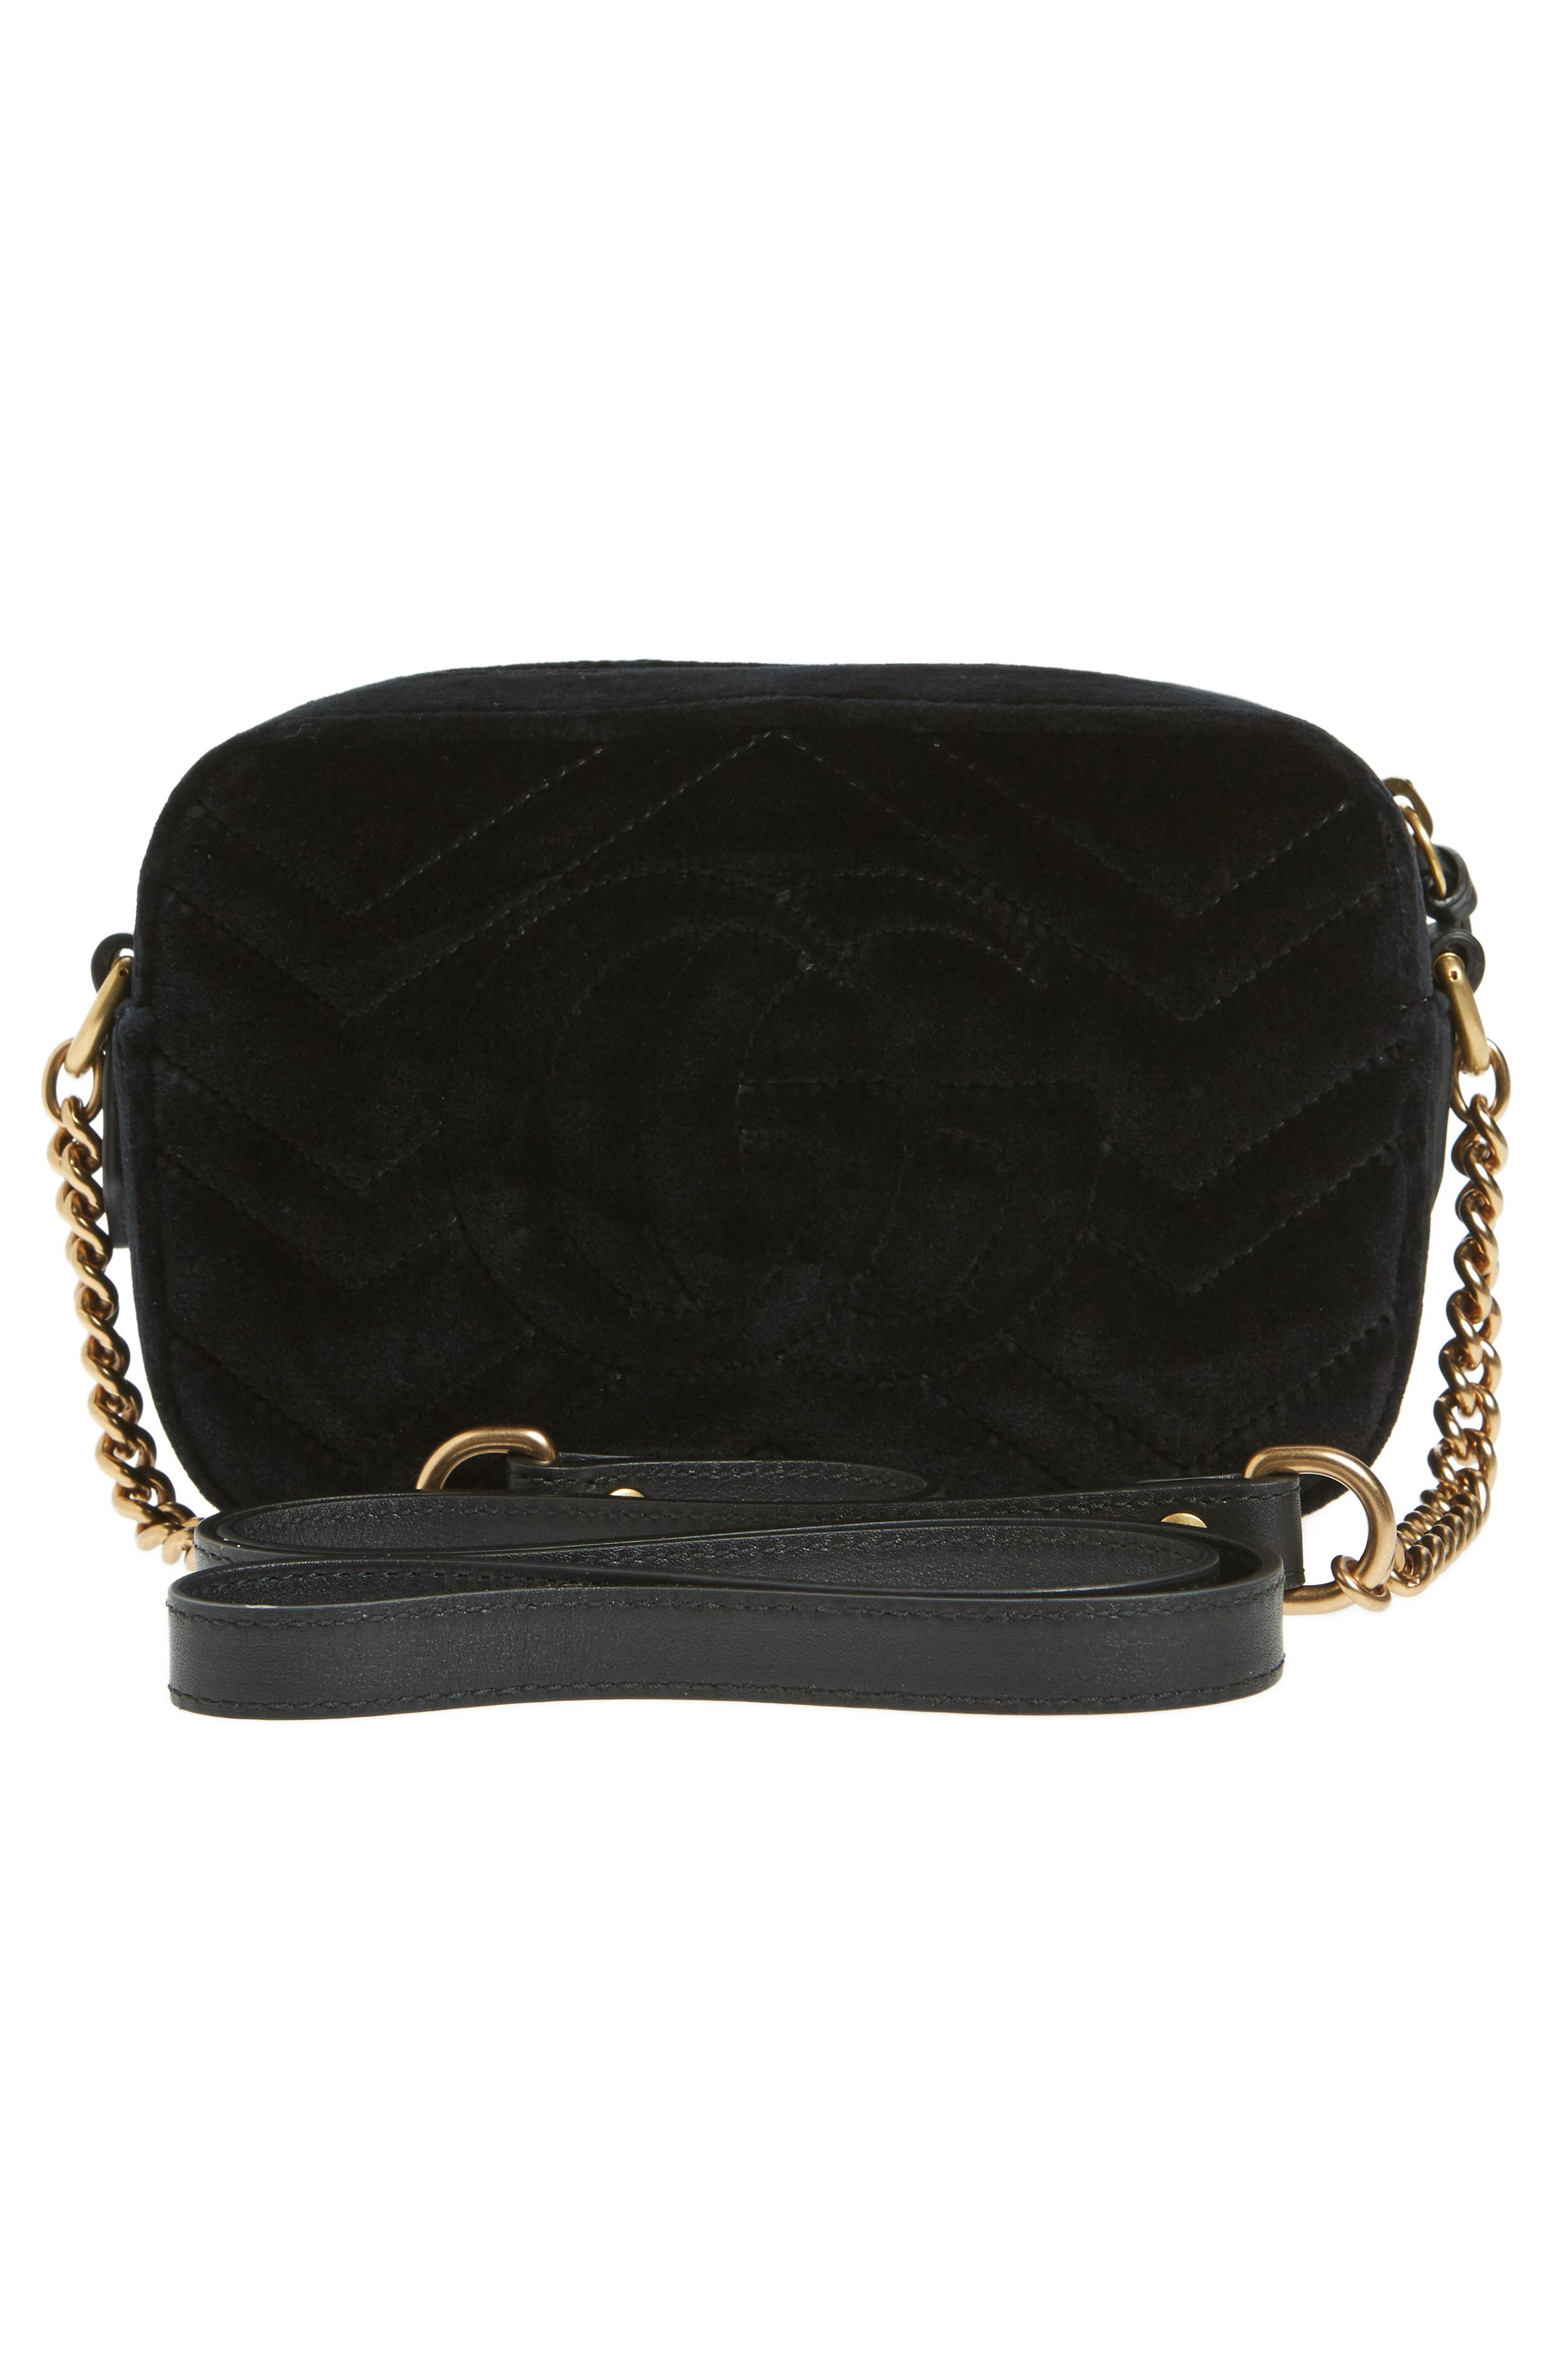 GG Marmont Crystal Matelassé Quilted Velvet Crossbody Bag,                             Alternate thumbnail 3, color,                             Nero/ Crystal